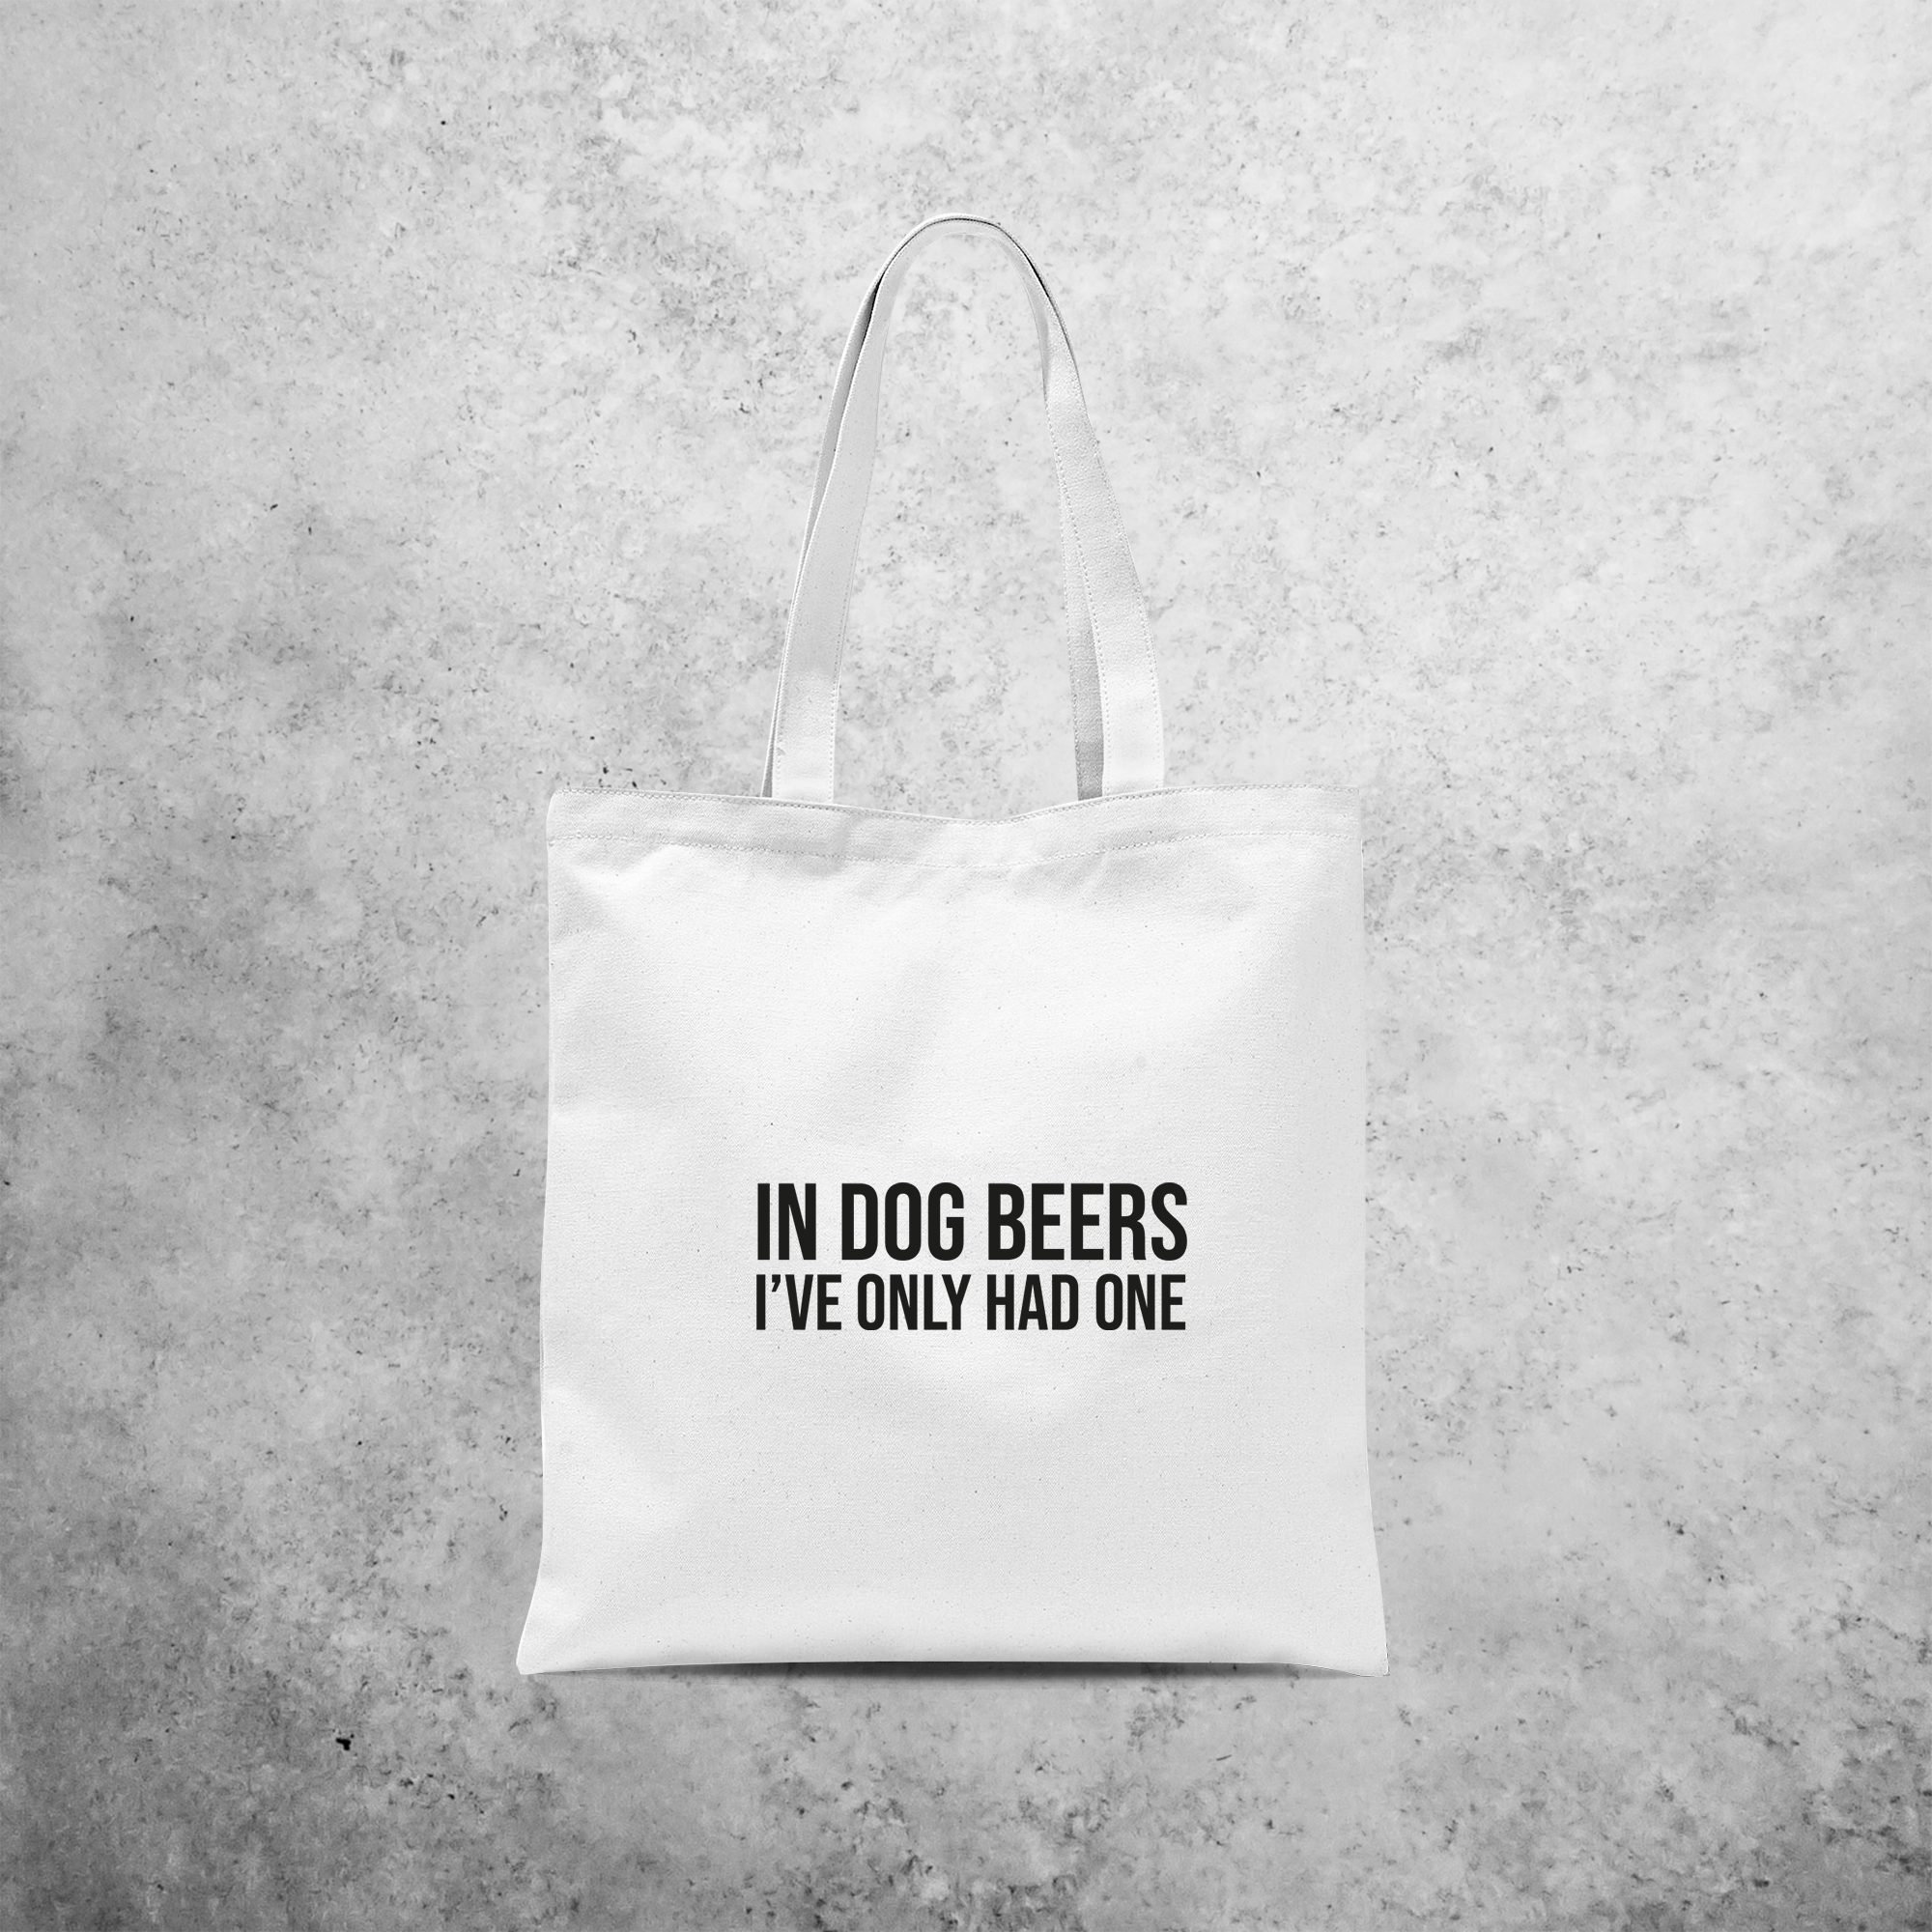 'In dog beers I've only had one' tote bag